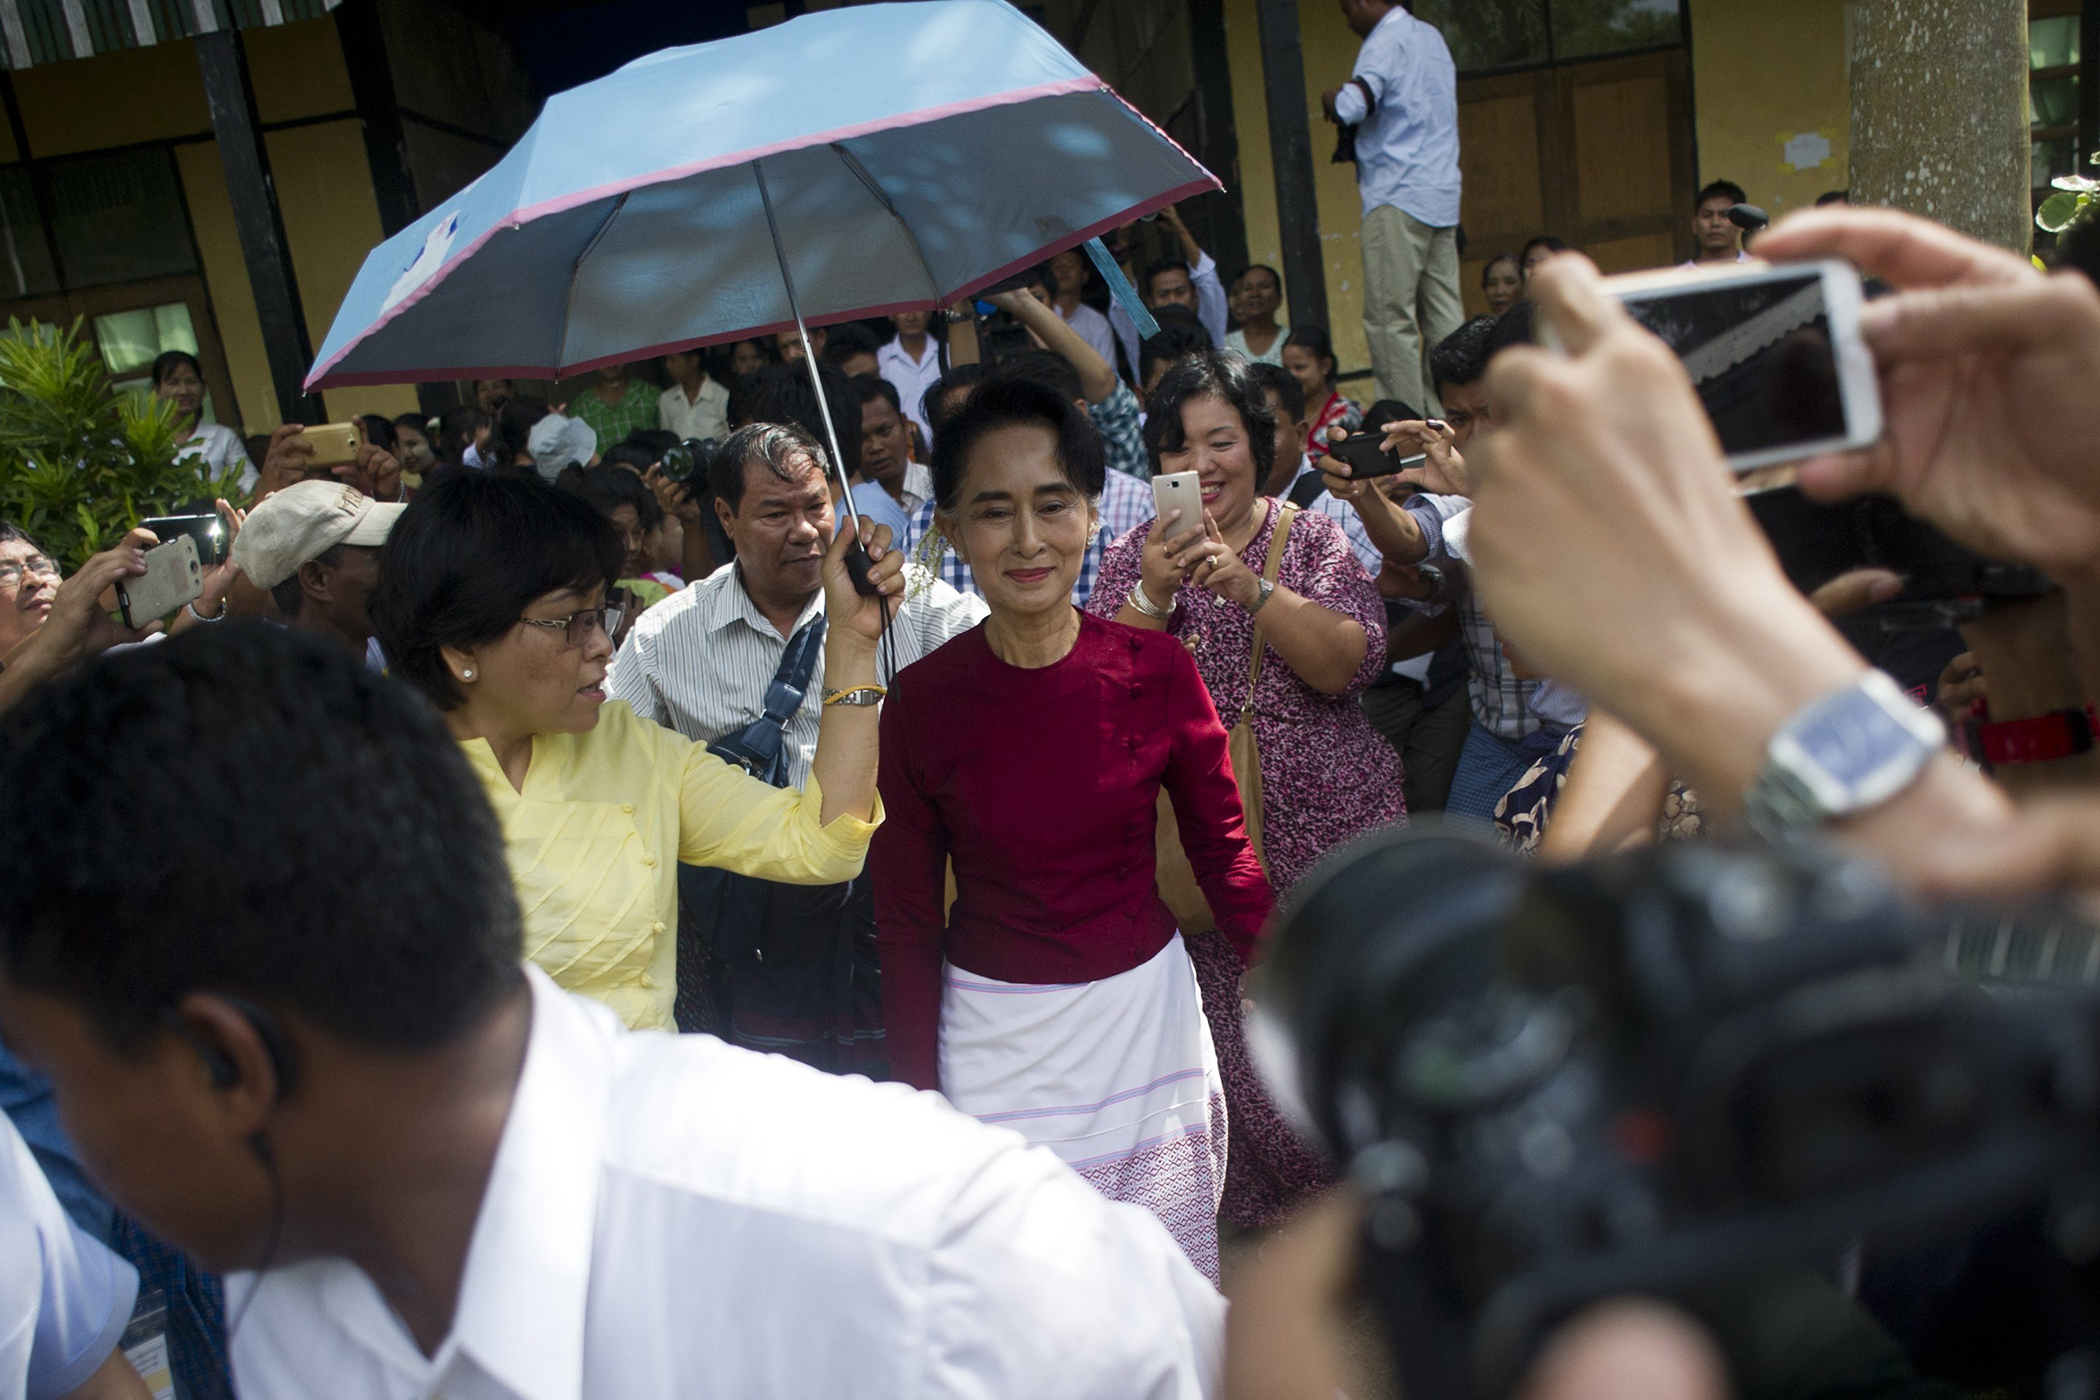 Aung San Suu Kyivisits a polling station in Kawhmu township, Yangon on Nov. 8, 2015.